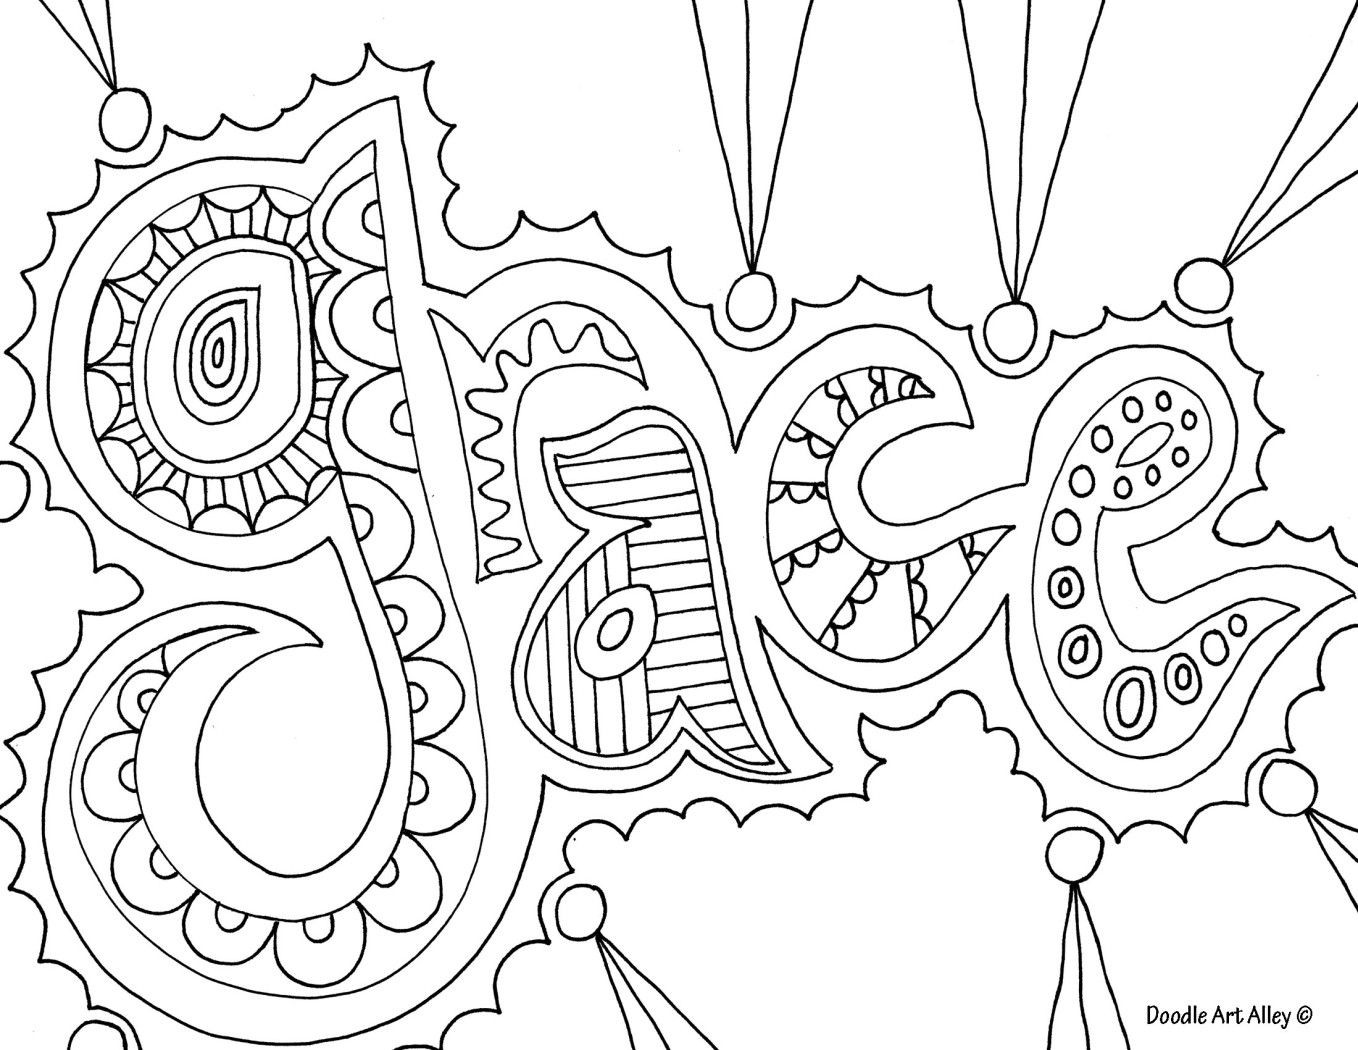 Coloring Pages For Teens Grace  Doodle art grace nice coloring page for older kids